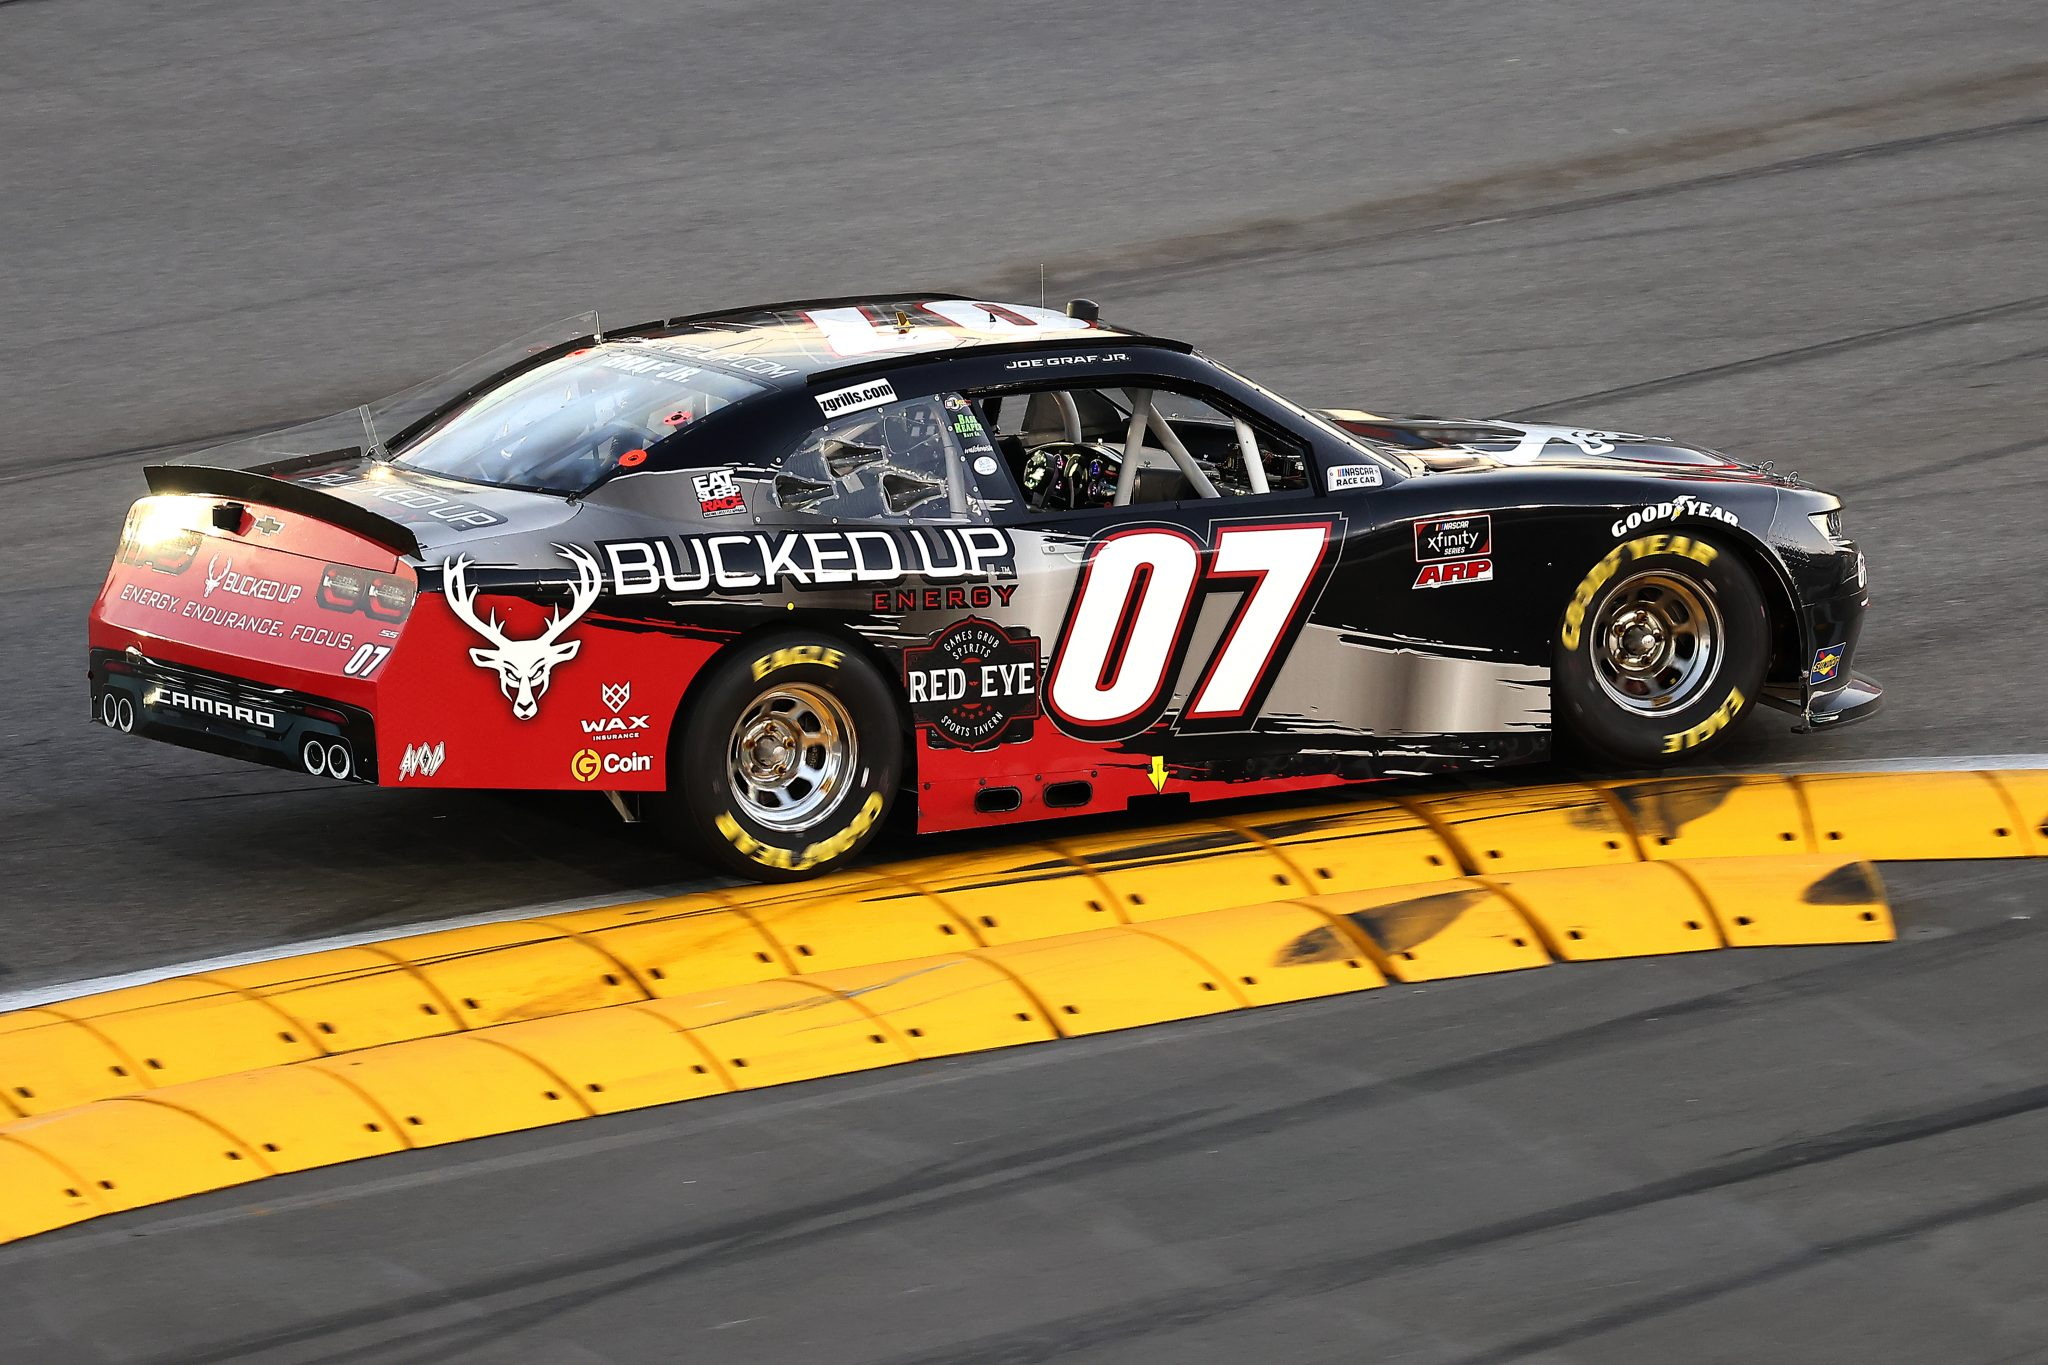 DAYTONA BEACH, FLORIDA - FEBRUARY 20: Joe Graf Jr., driver of the #07 Bucked Up Energy Chevrolet, drives during the NASCAR Xfinity Super Start Batteries 188 At Daytona Presented by O'Reilly at Daytona International Speedway on February 20, 2021 in Daytona Beach, Florida. (Photo by James Gilbert/Getty Images) | Getty Images